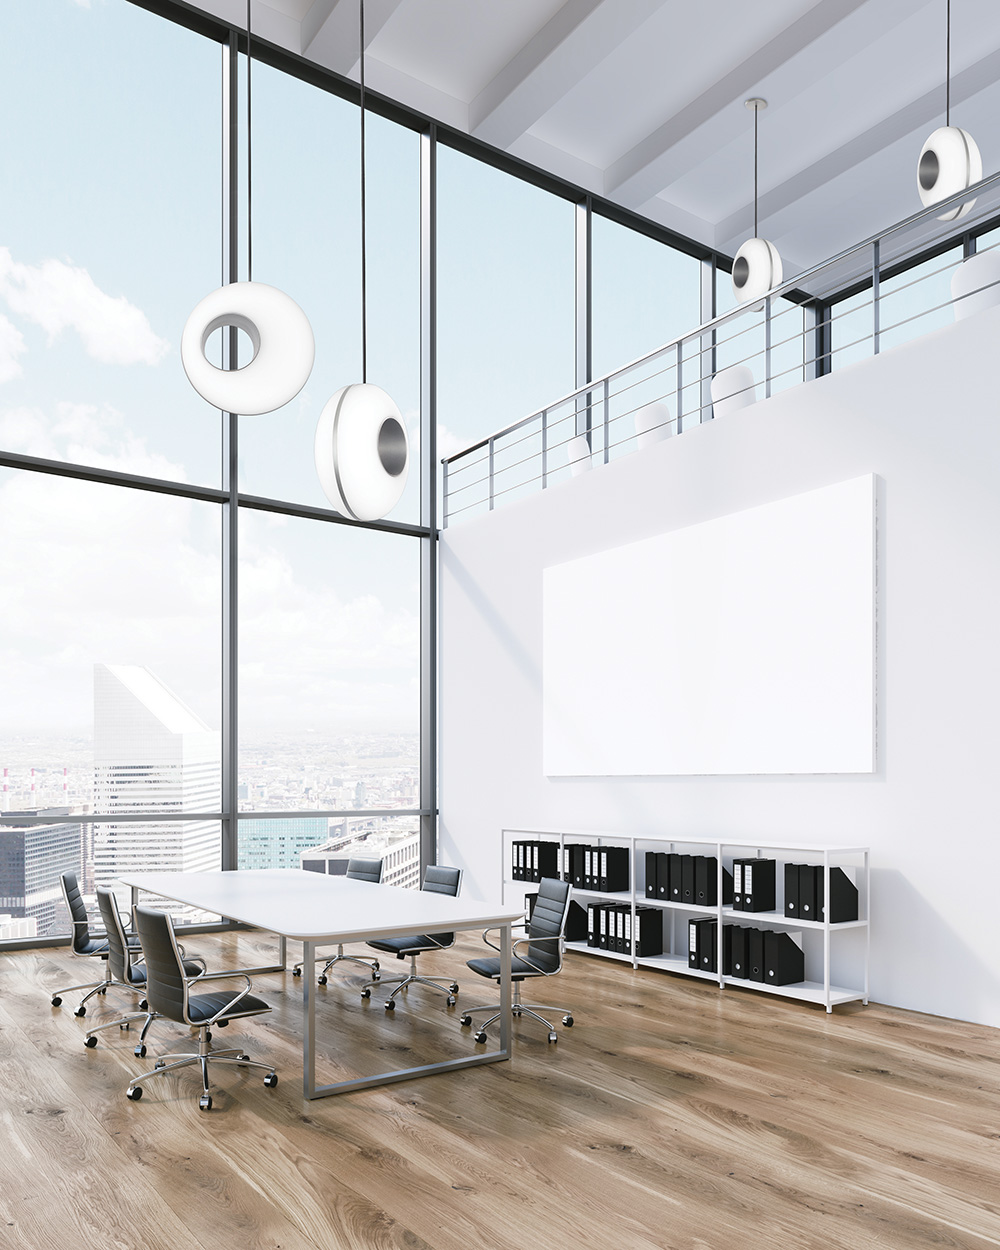 Peek luminaire models in multiple sizes in an open workplace, showing how the contemporary pendants can complement one another